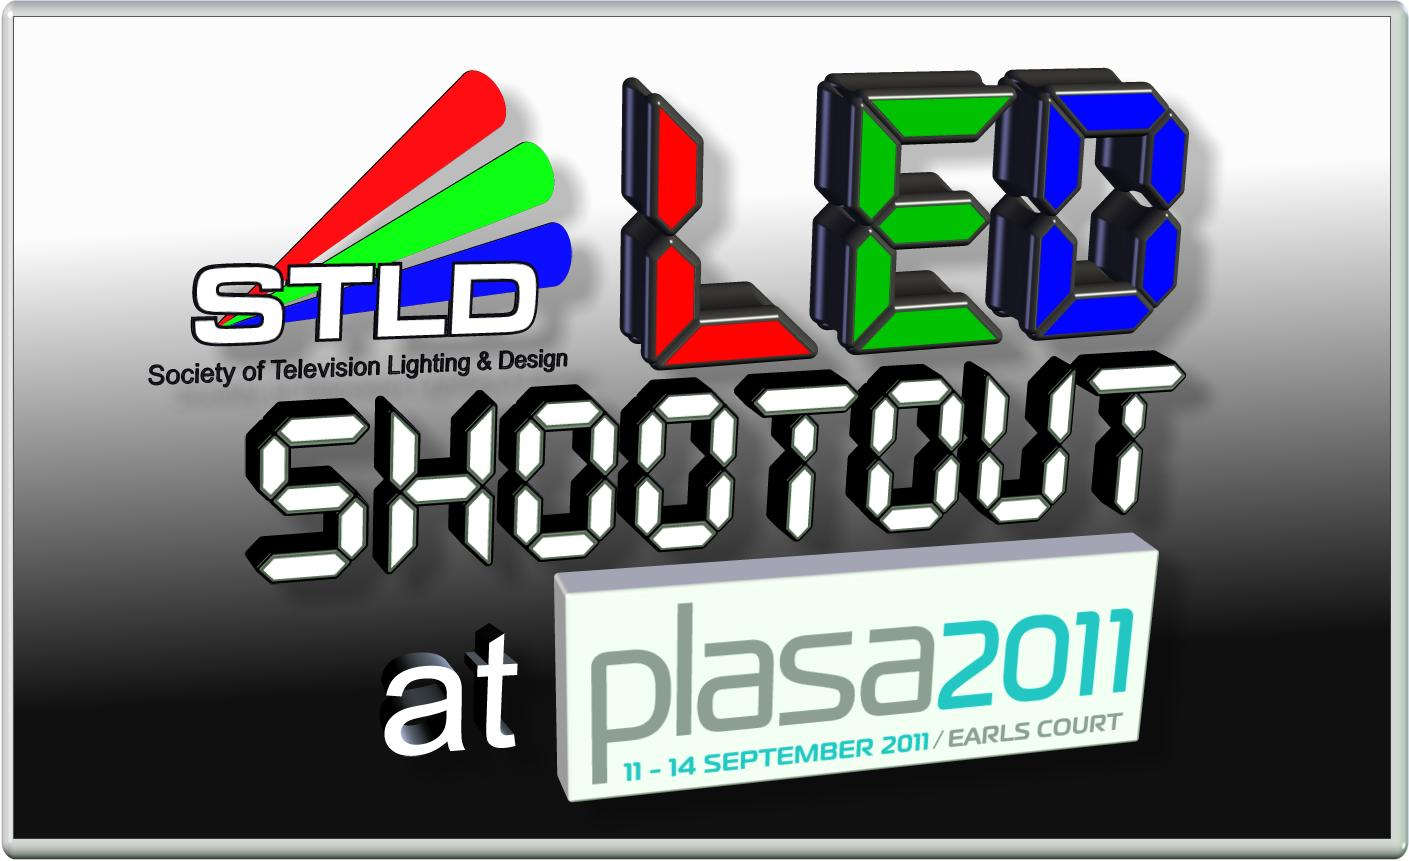 STLD LED Shootout Logo